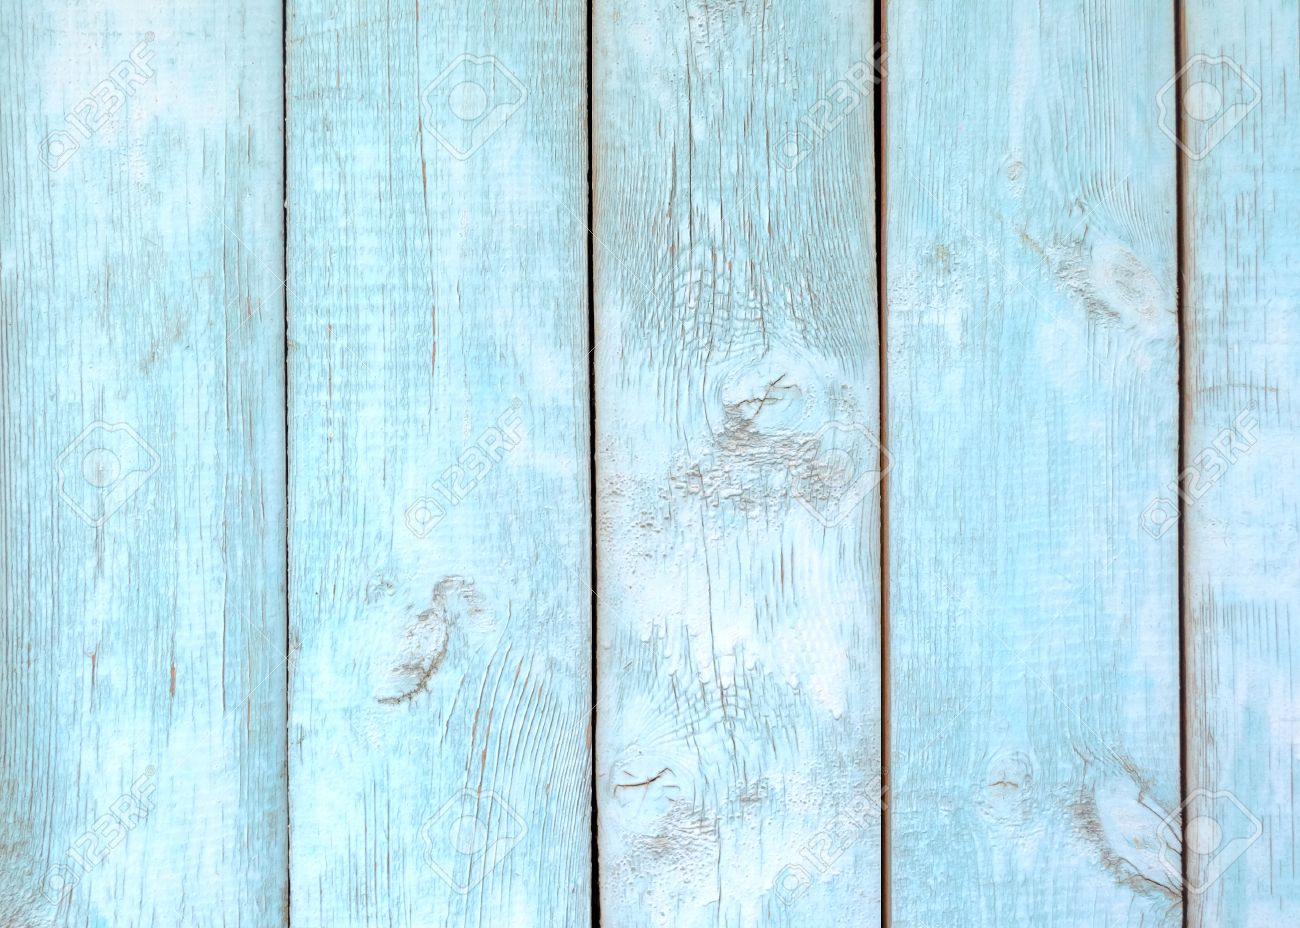 Blue Wood Board Panel Stock Photo Image Of White Rustic 71618346